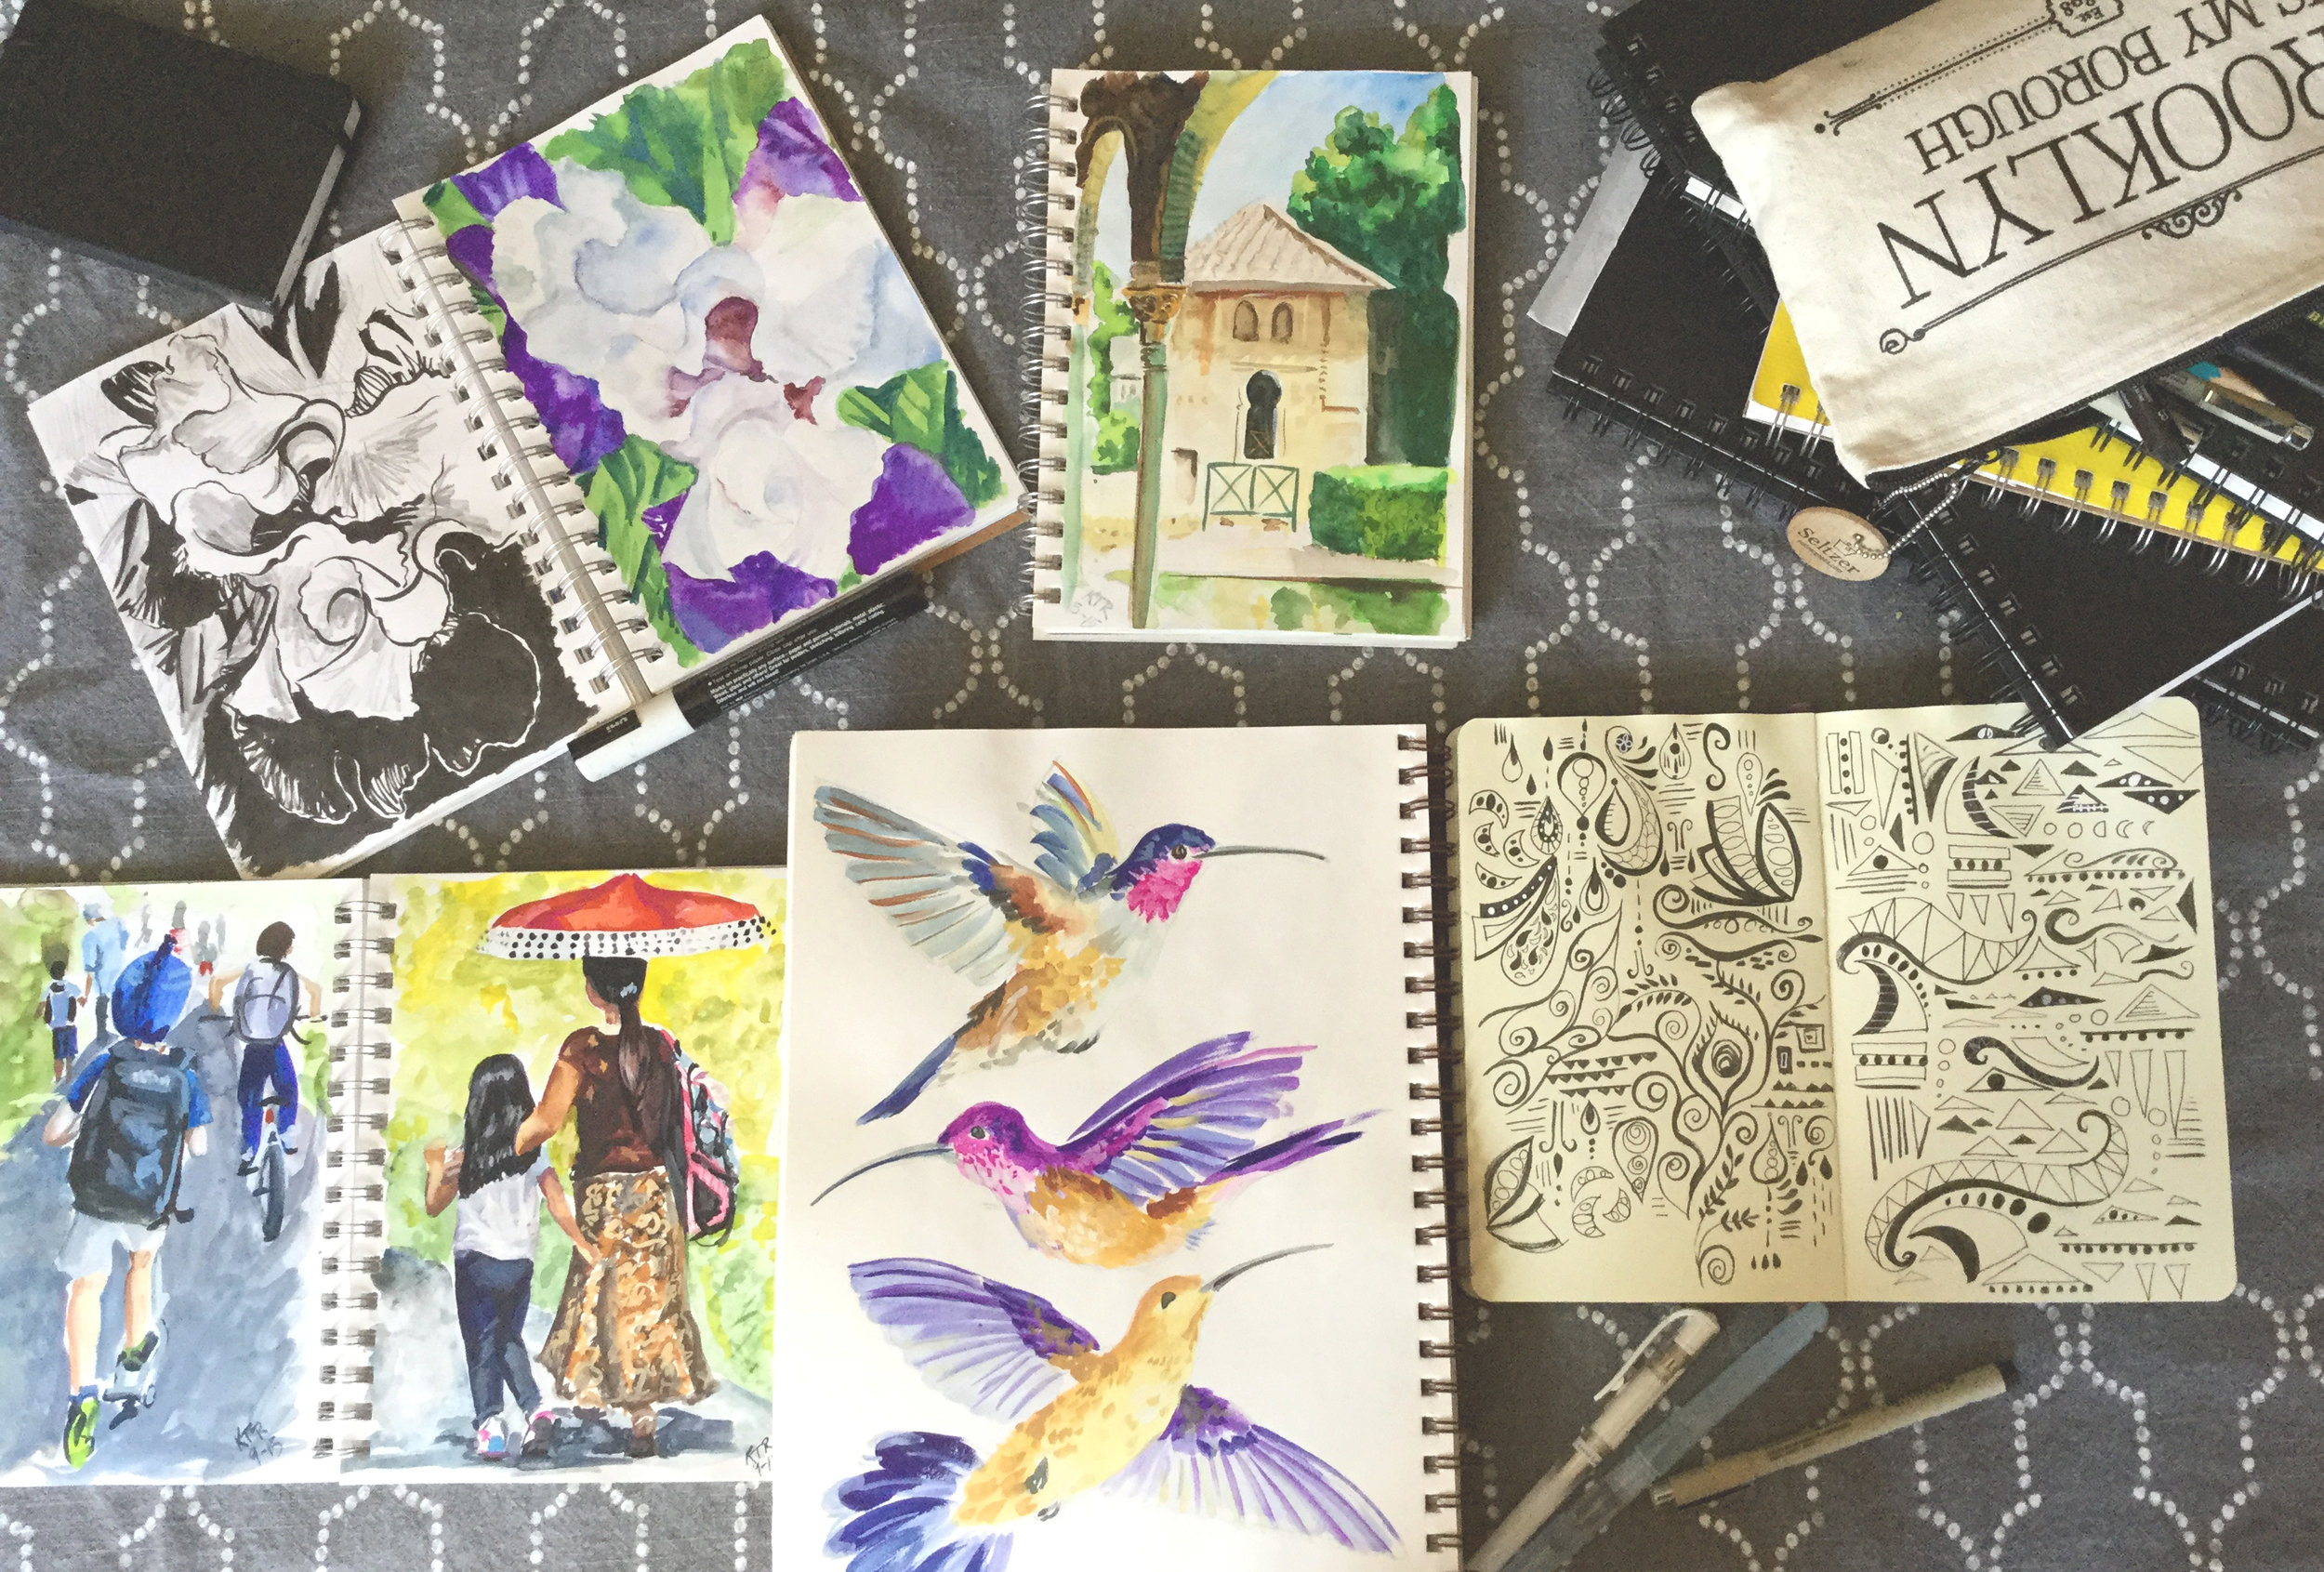 This is a small selection of images from my ever growing collection of sketchbooks. Many of these sketchbook pages have already inspired paintings. When I am searching for an idea to paint, I often refer to the sketches in these books to inspire a theme, or color combination..